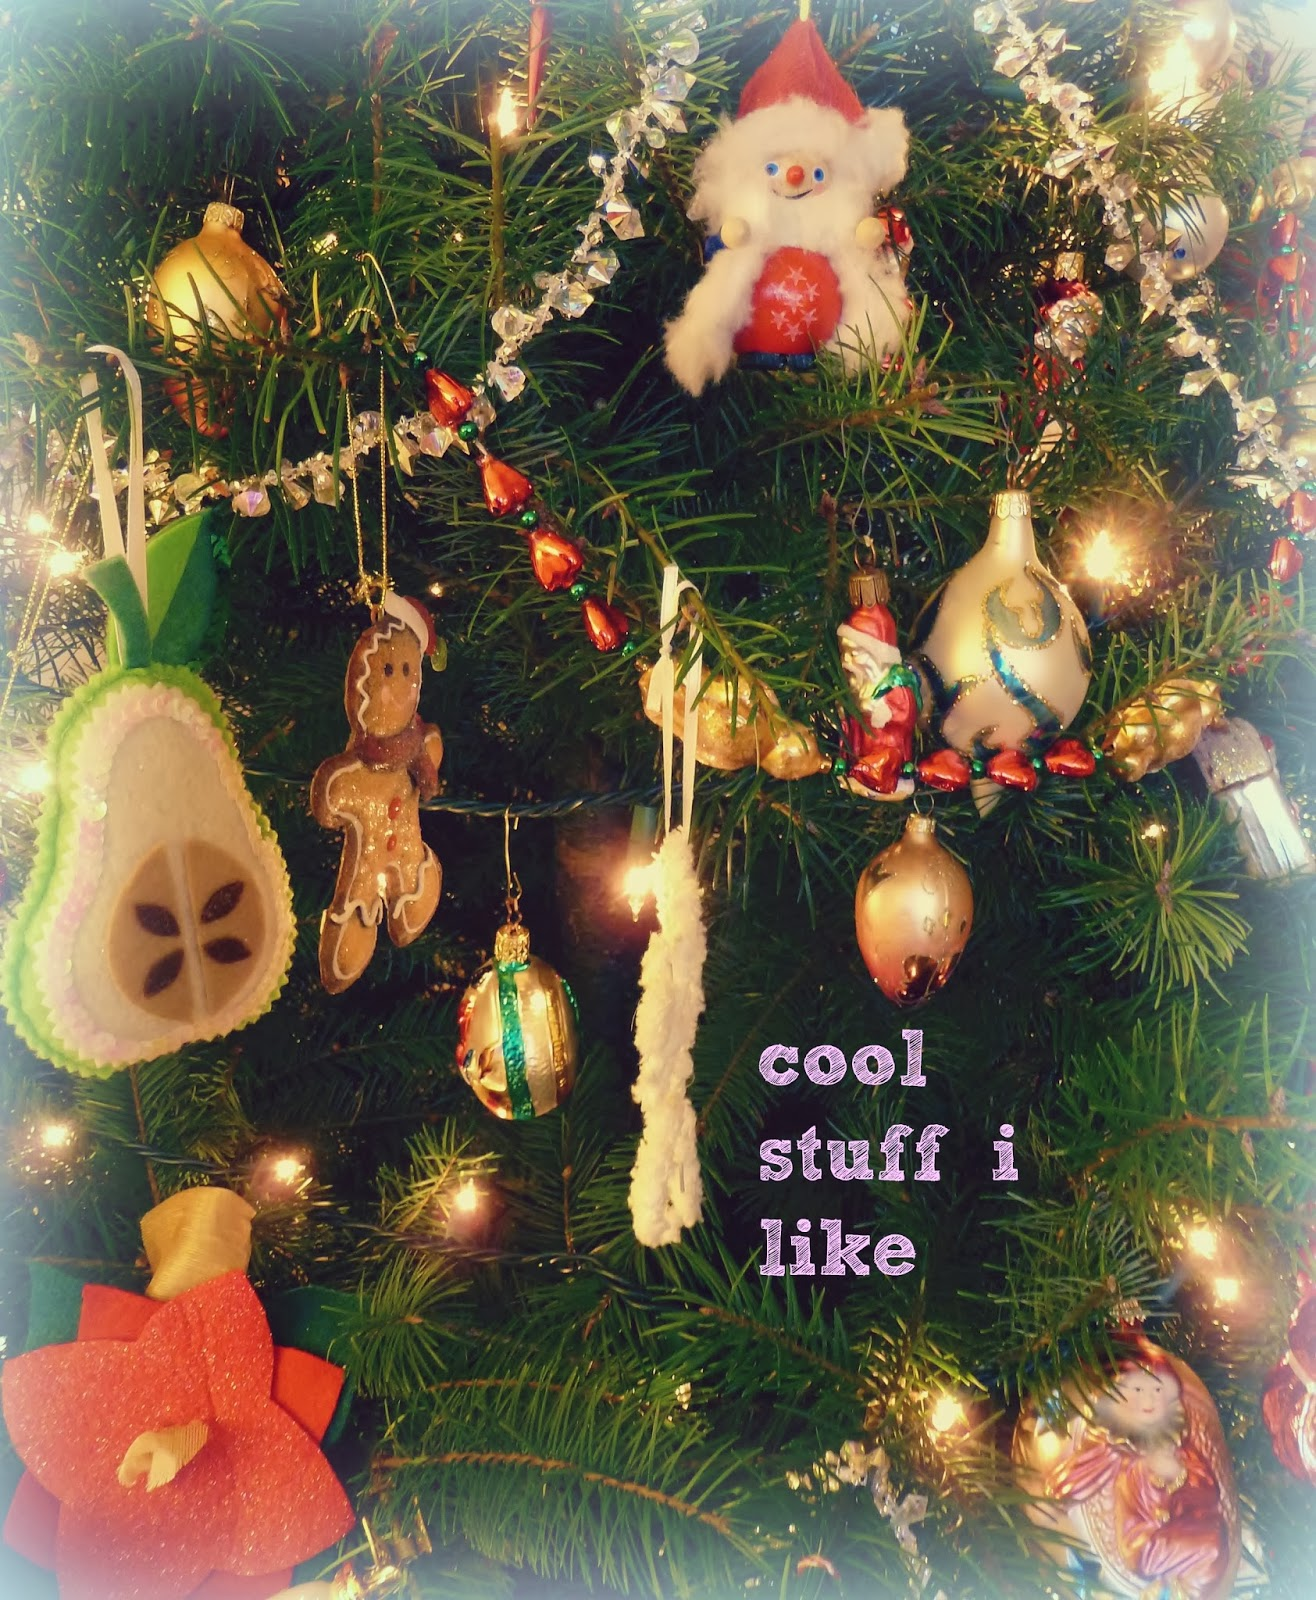 cool stuff i like happy friday my lovelies im super excited for christmas to come and be over with so that i can fully enjoy christmas